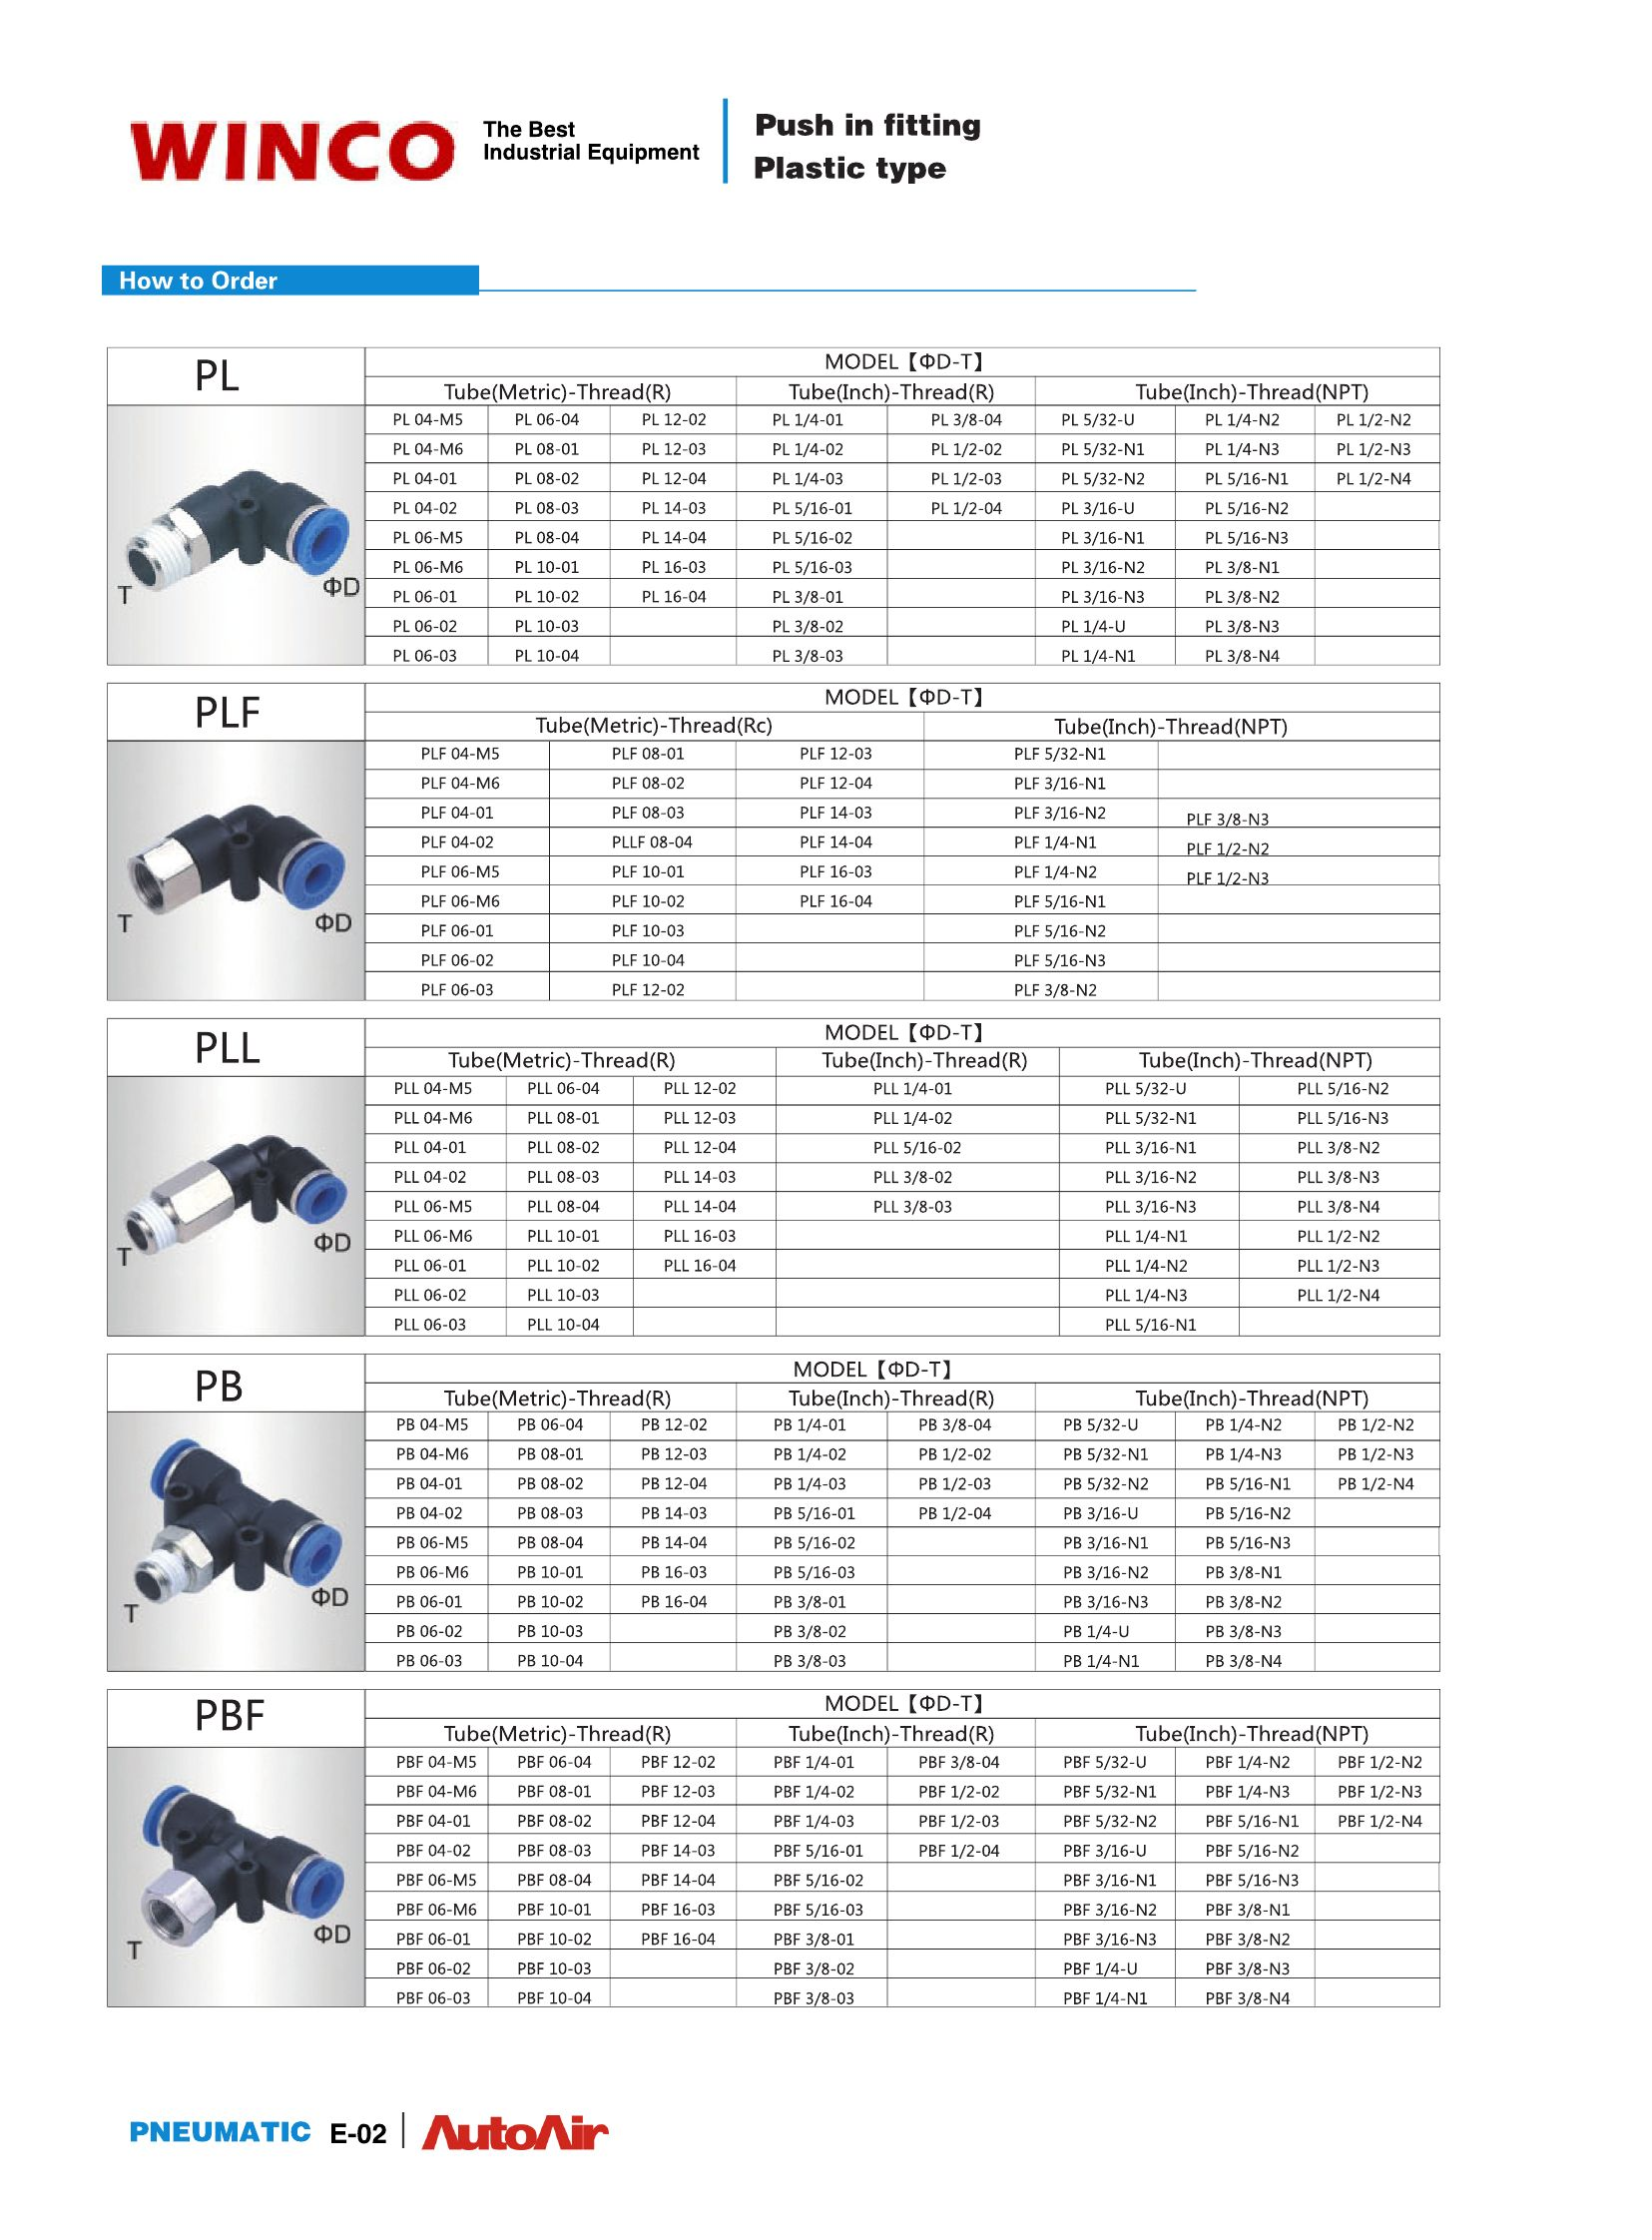 Fittings And Tubing Push In Fittings